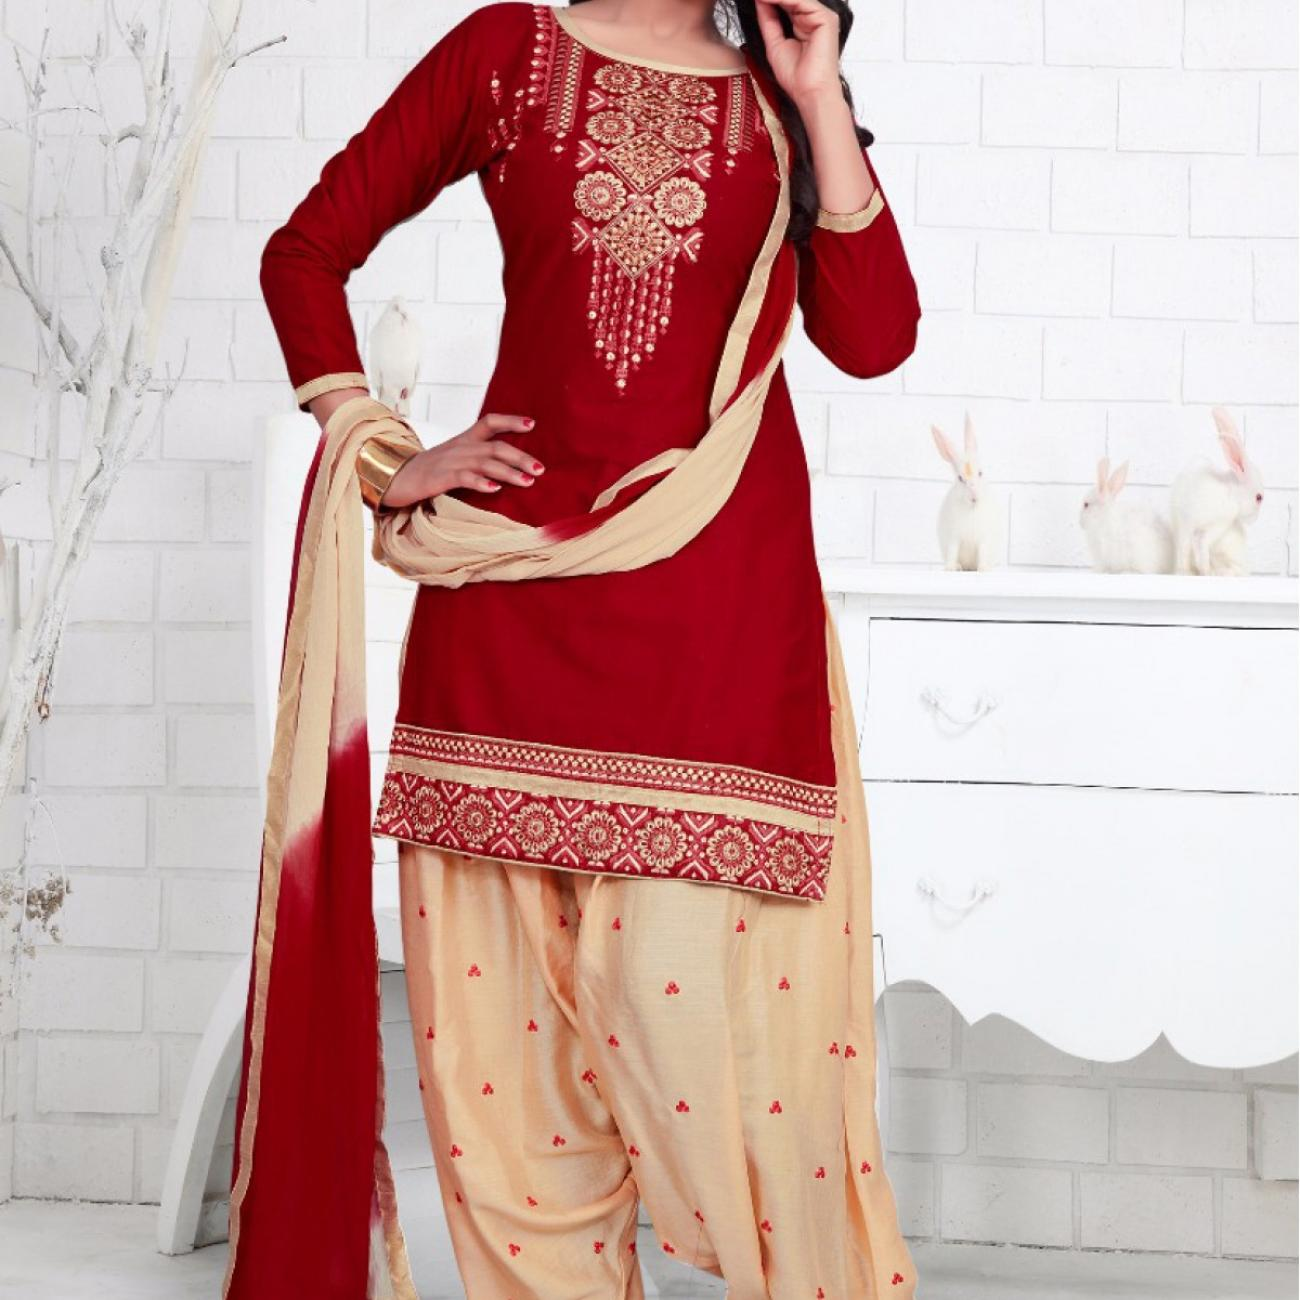 Cotton-Party-Wear-Patiala-Suit-In-Red-Colour-US1651526-A-1200x1799_(1)